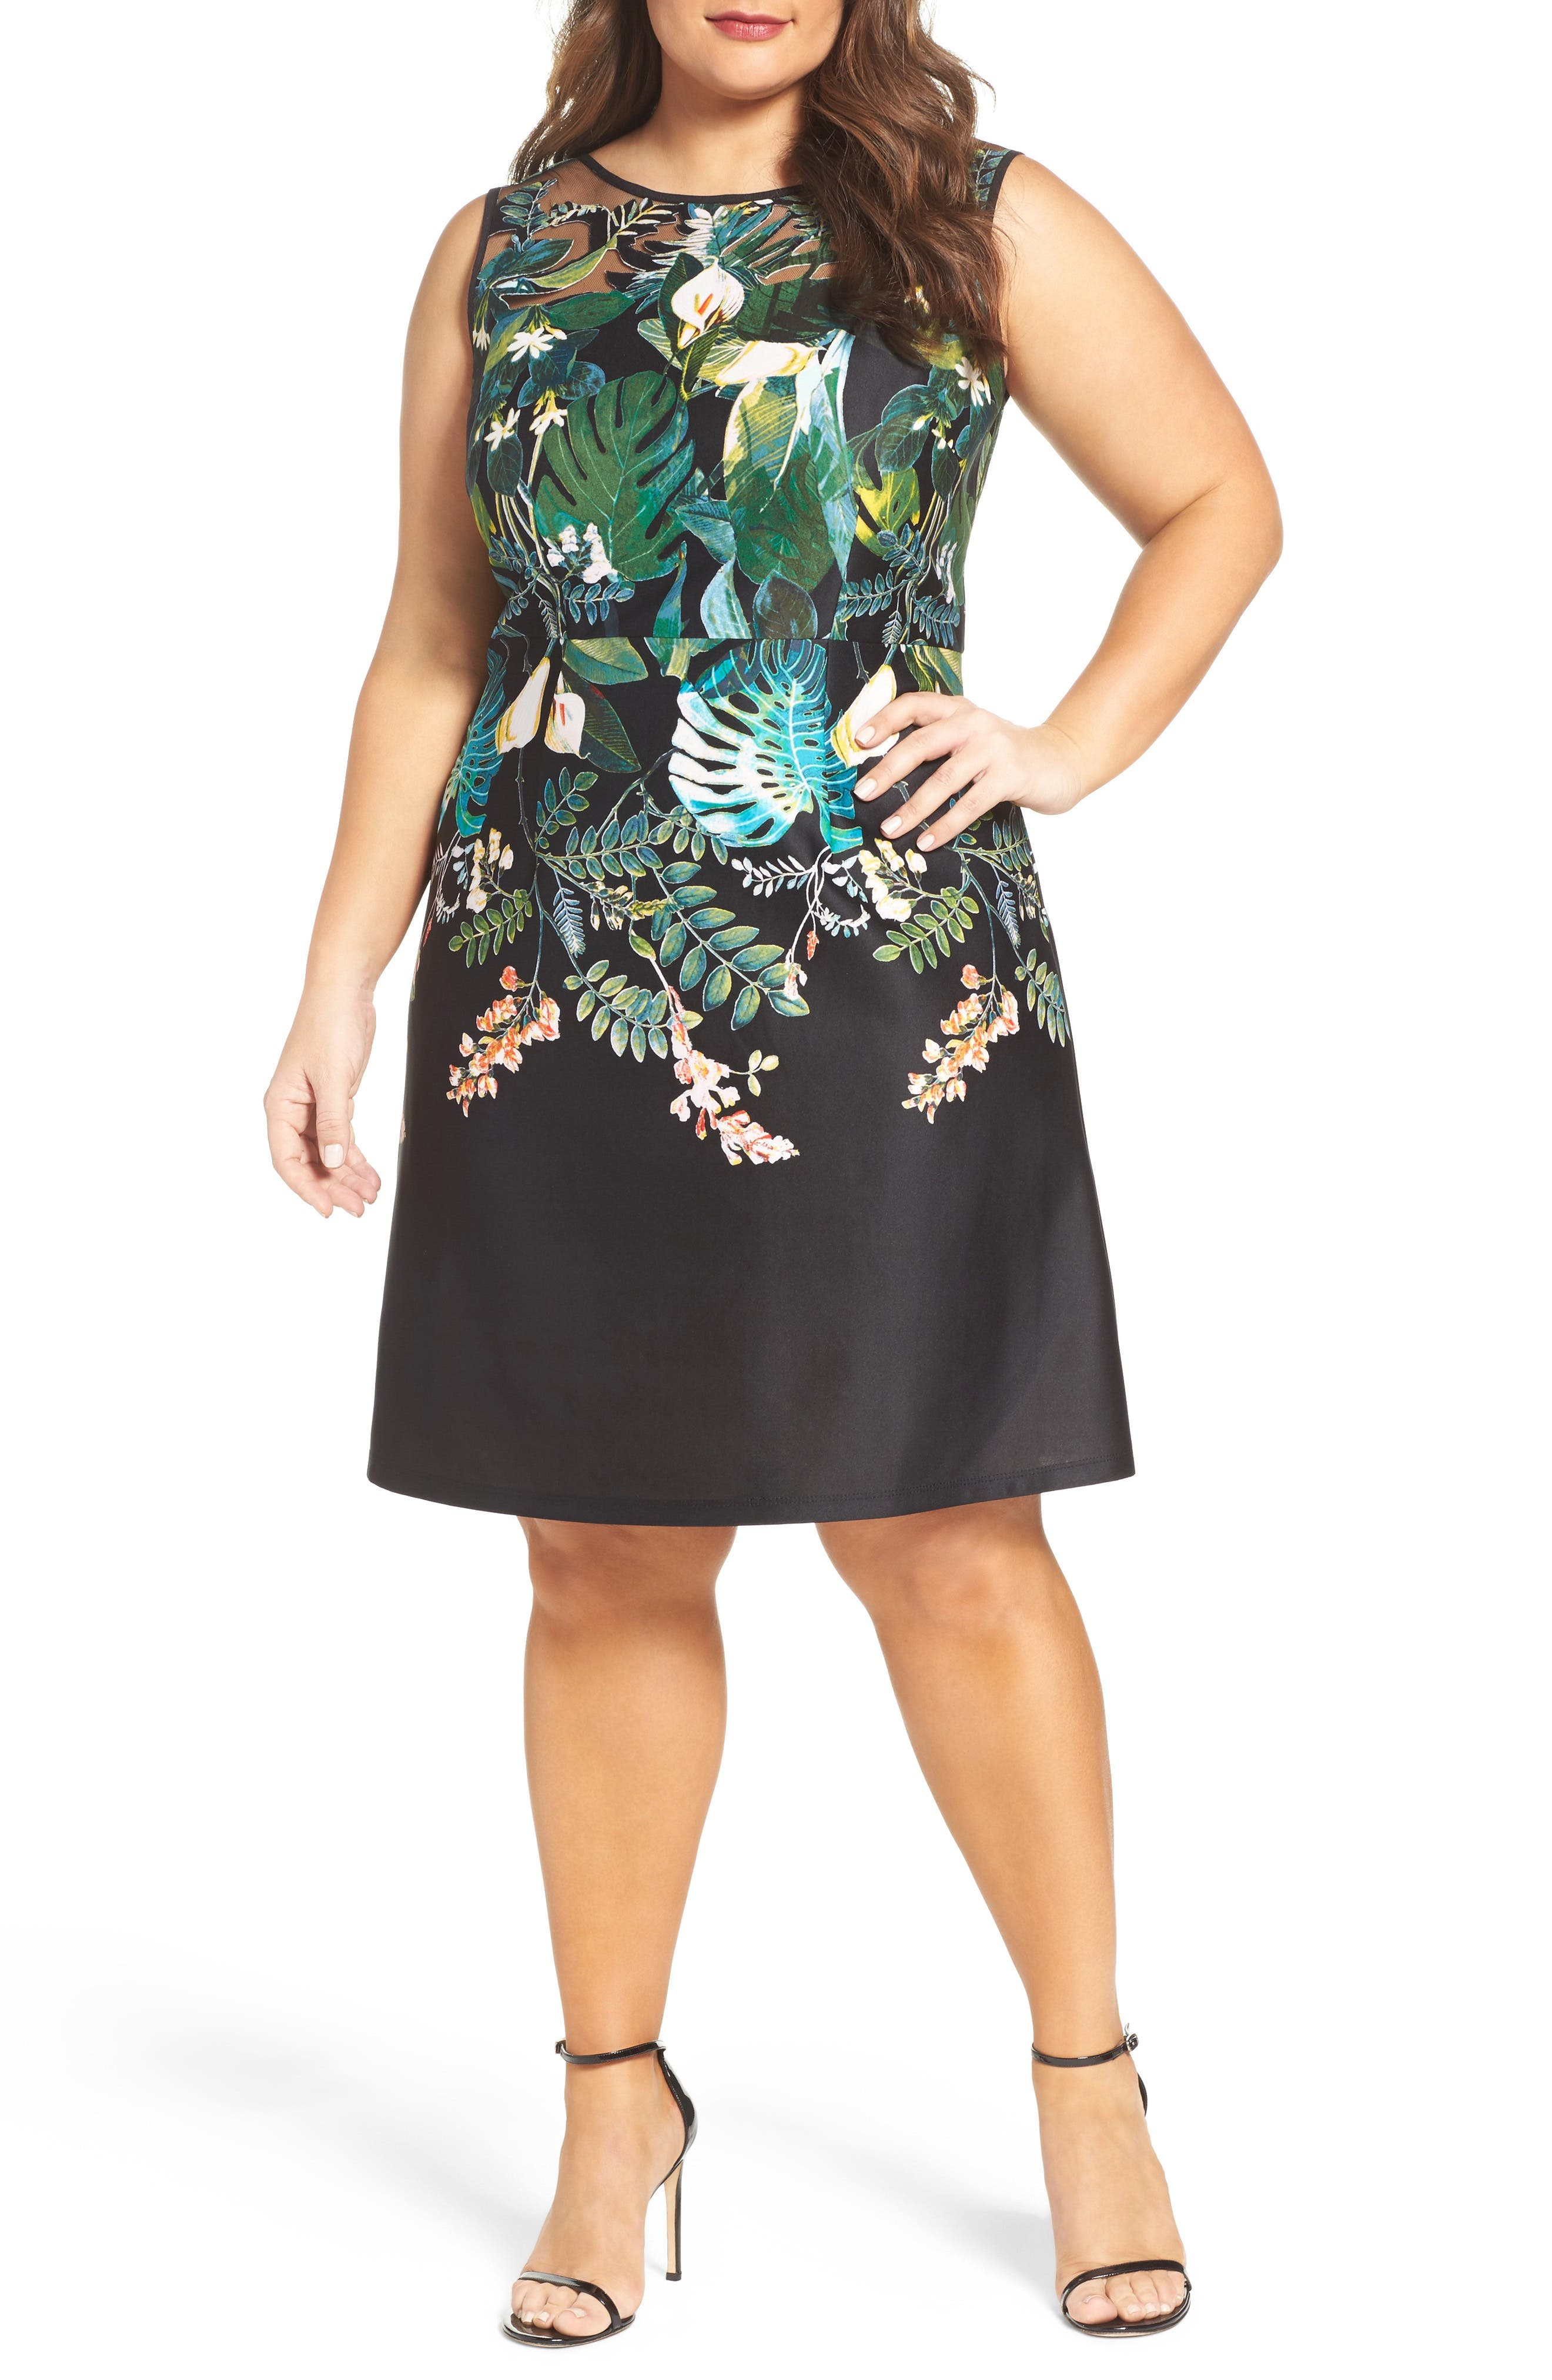 Adrianna Papell Laser Cut A-Line Dress (Plus Size)